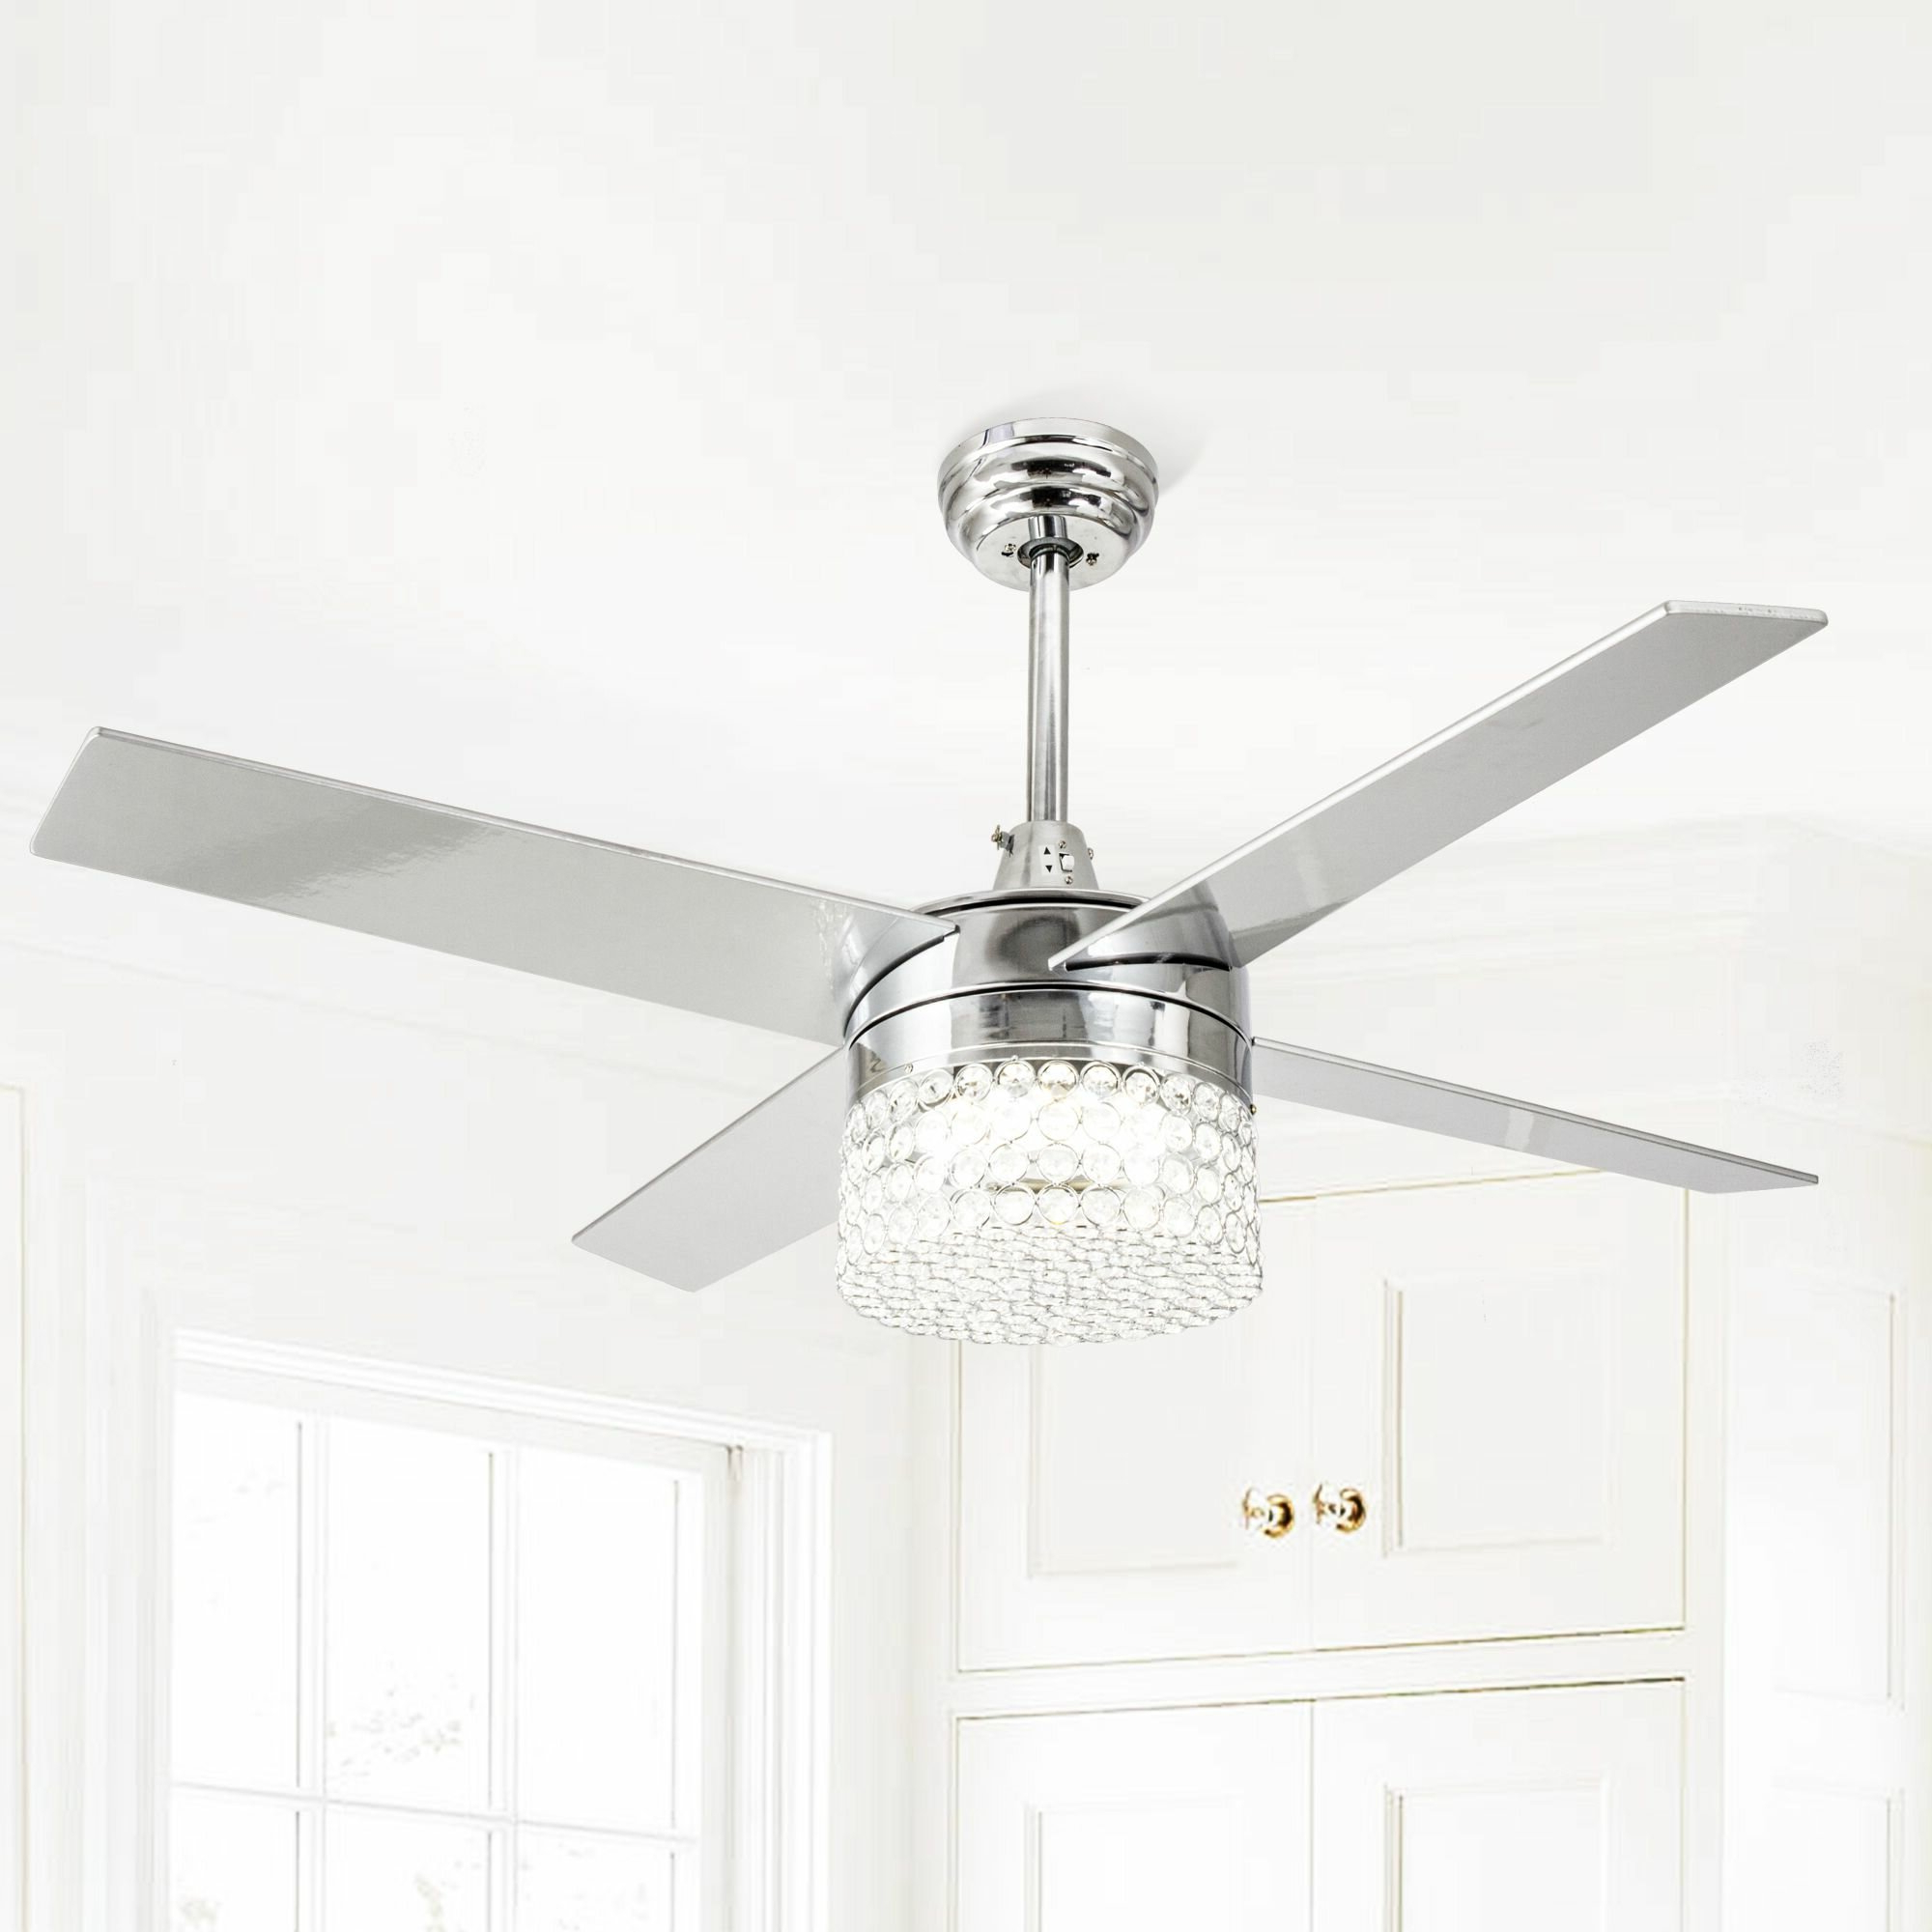 Marchand Crystal 4 Blade Led Ceiling Fan With Remote, Light Kit Included For Widely Used Tibuh Punched Metal Crystal 5 Blade Ceiling Fans With Remote (View 7 of 20)